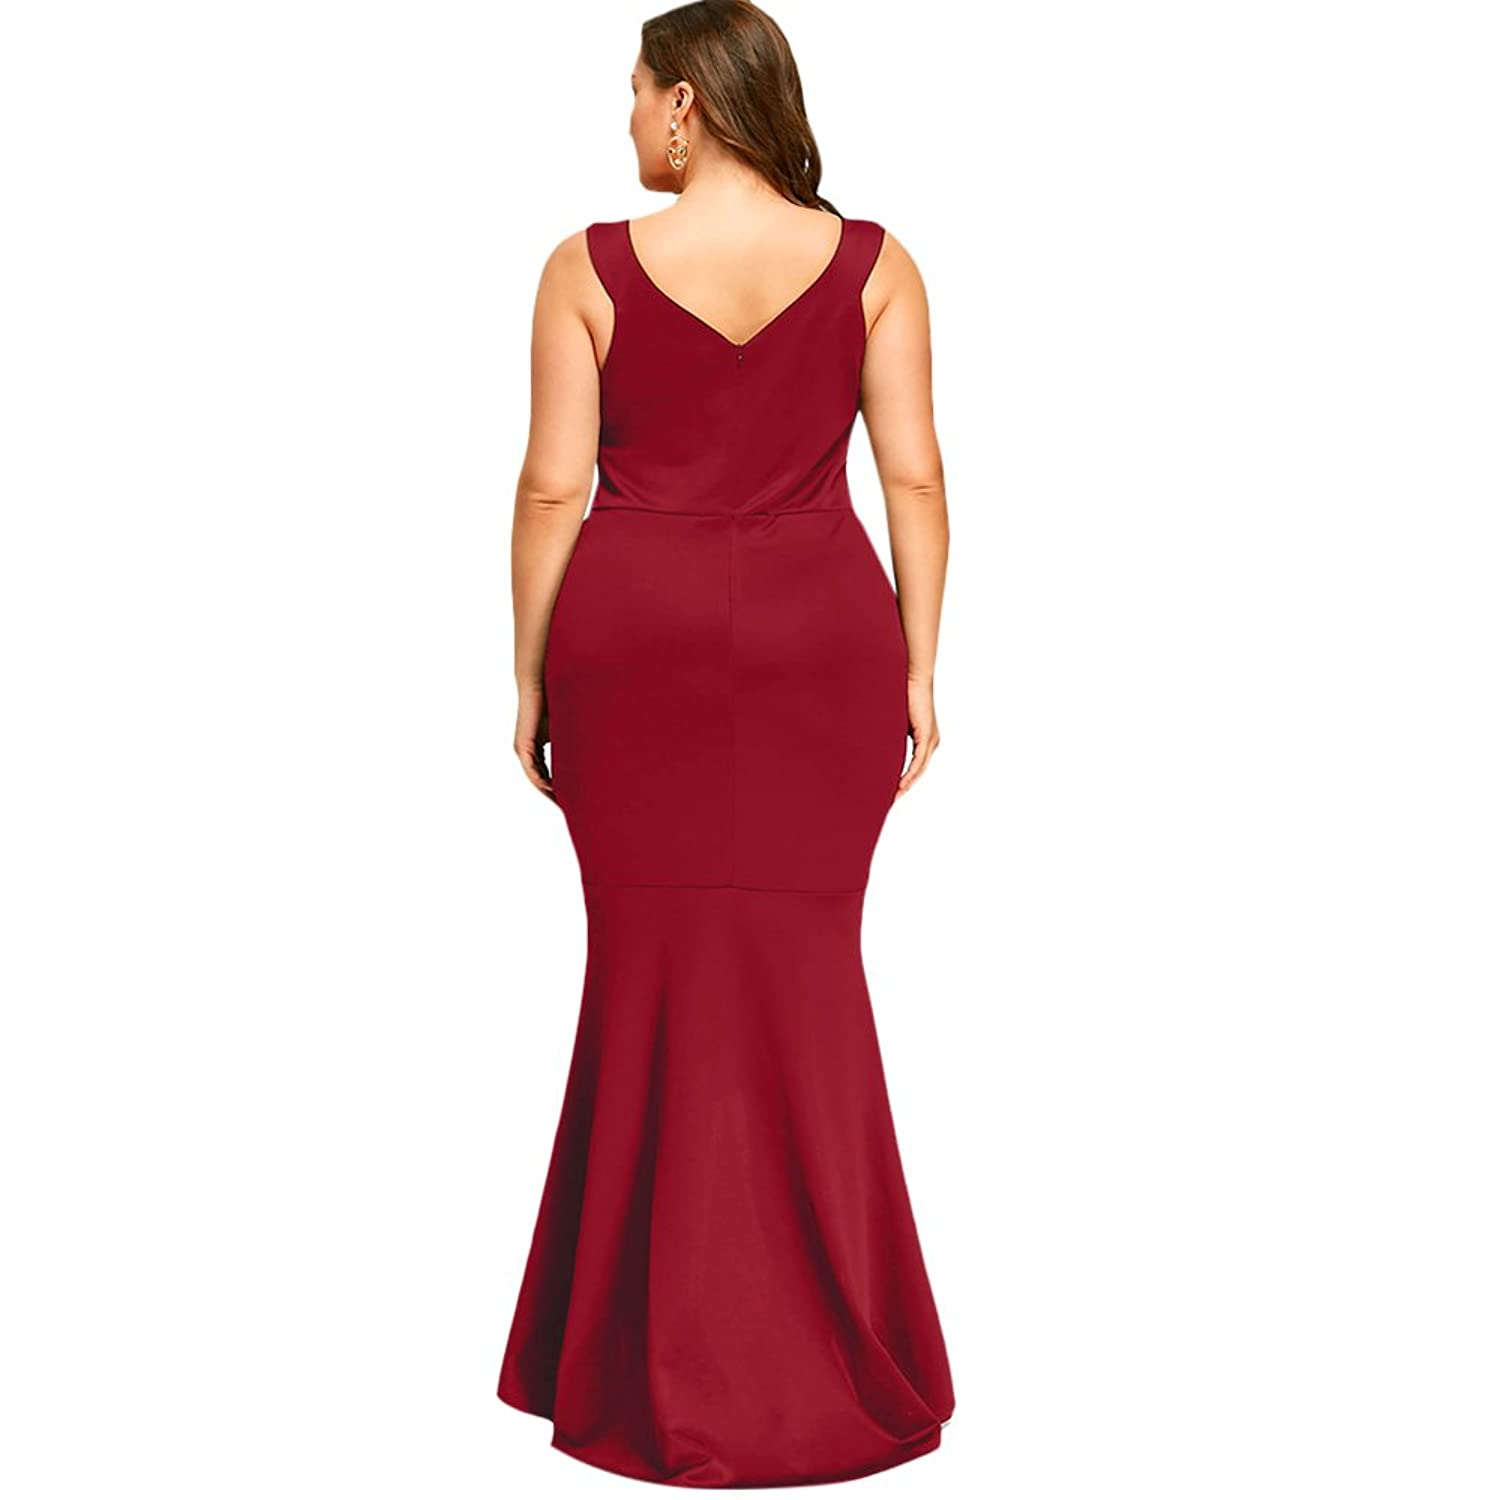 Amazon.com: Langstar Plus Size V Neck Floral Embroidered Sleeveless Mermaid Prom Dress(Red, 5XL): Clothing